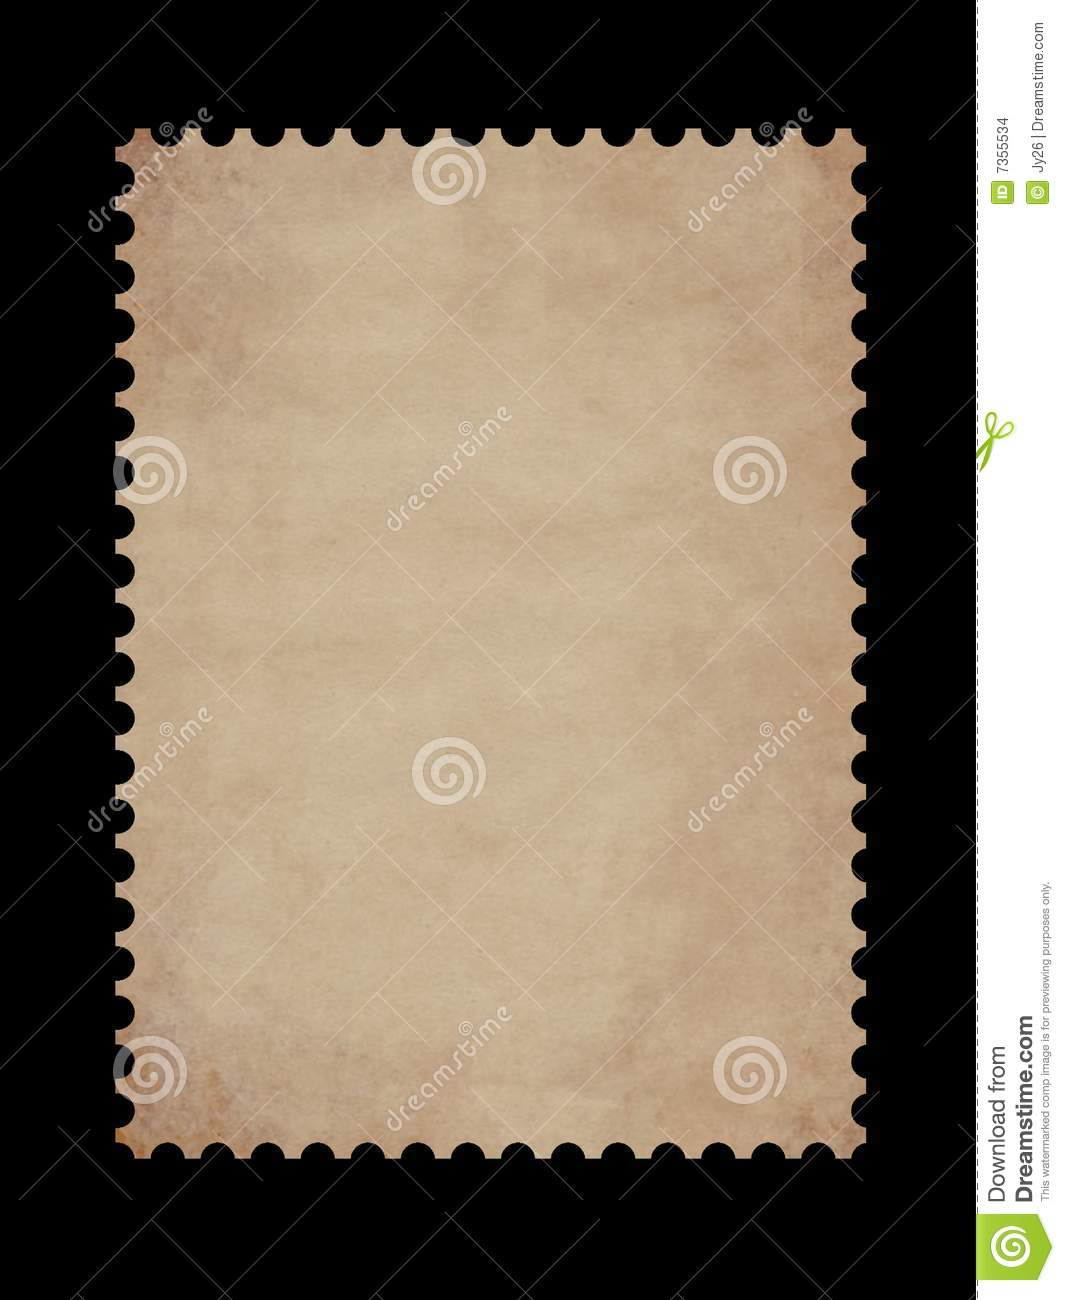 Old Postage Stamp Border Stock Images - Image: 7355534